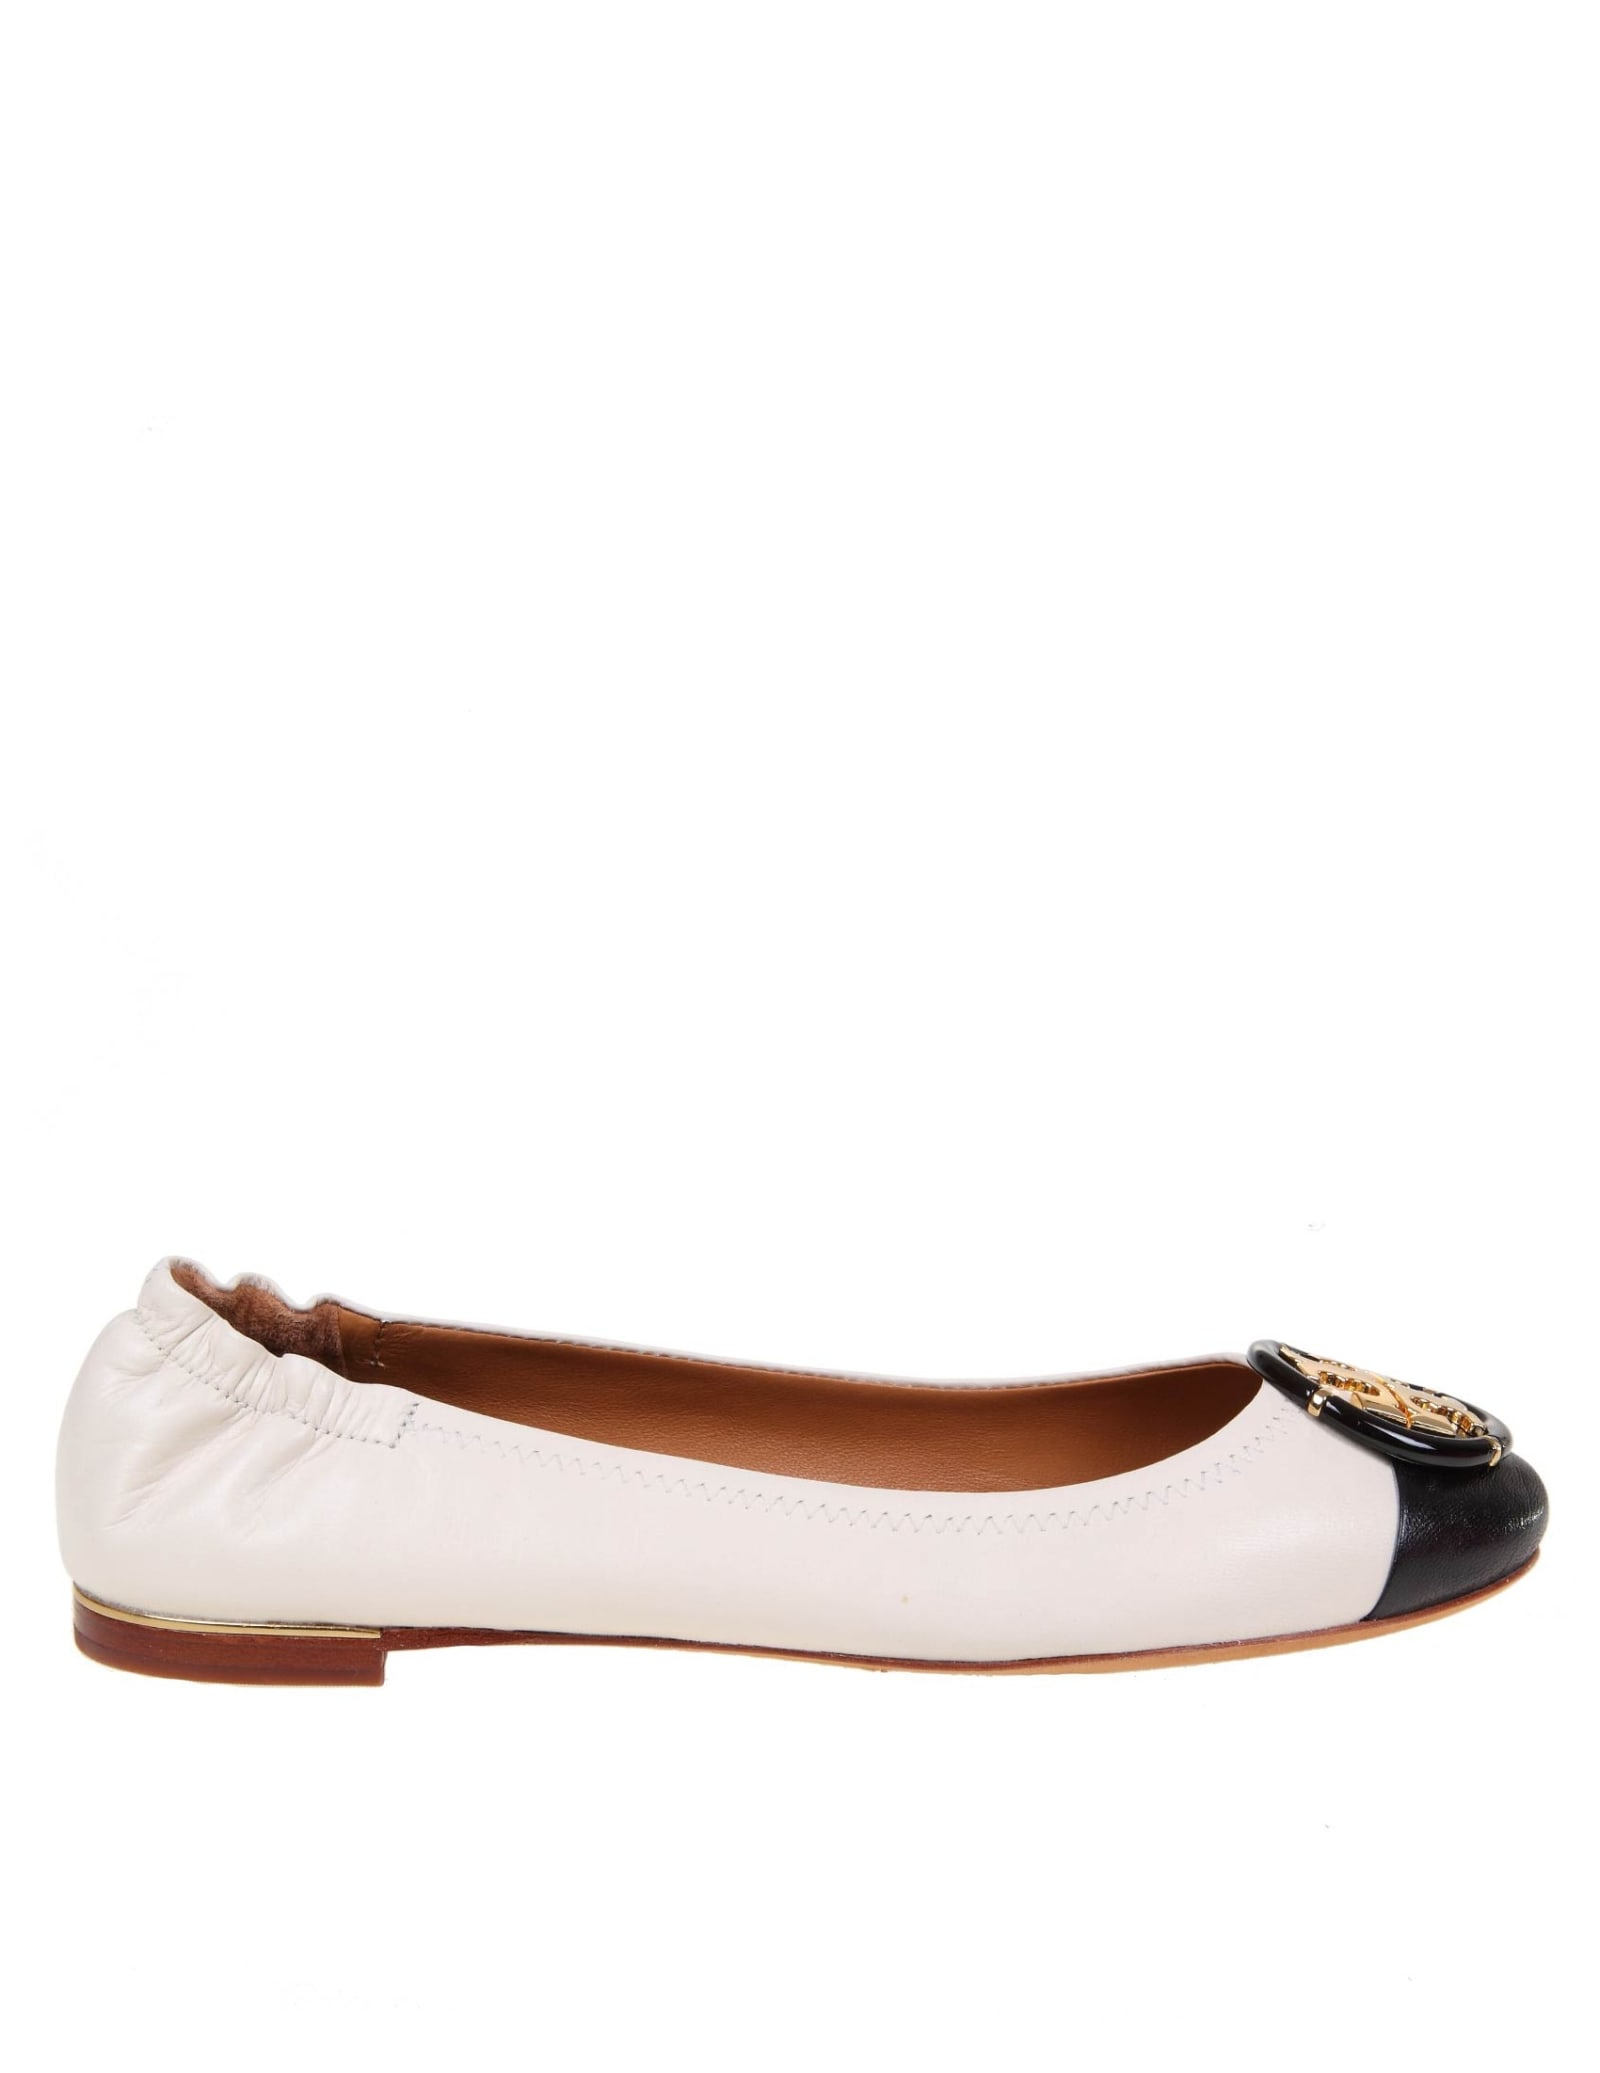 Tory Burch MULTI LOGO BALLERINA IN IVORY COLOR LEATHER